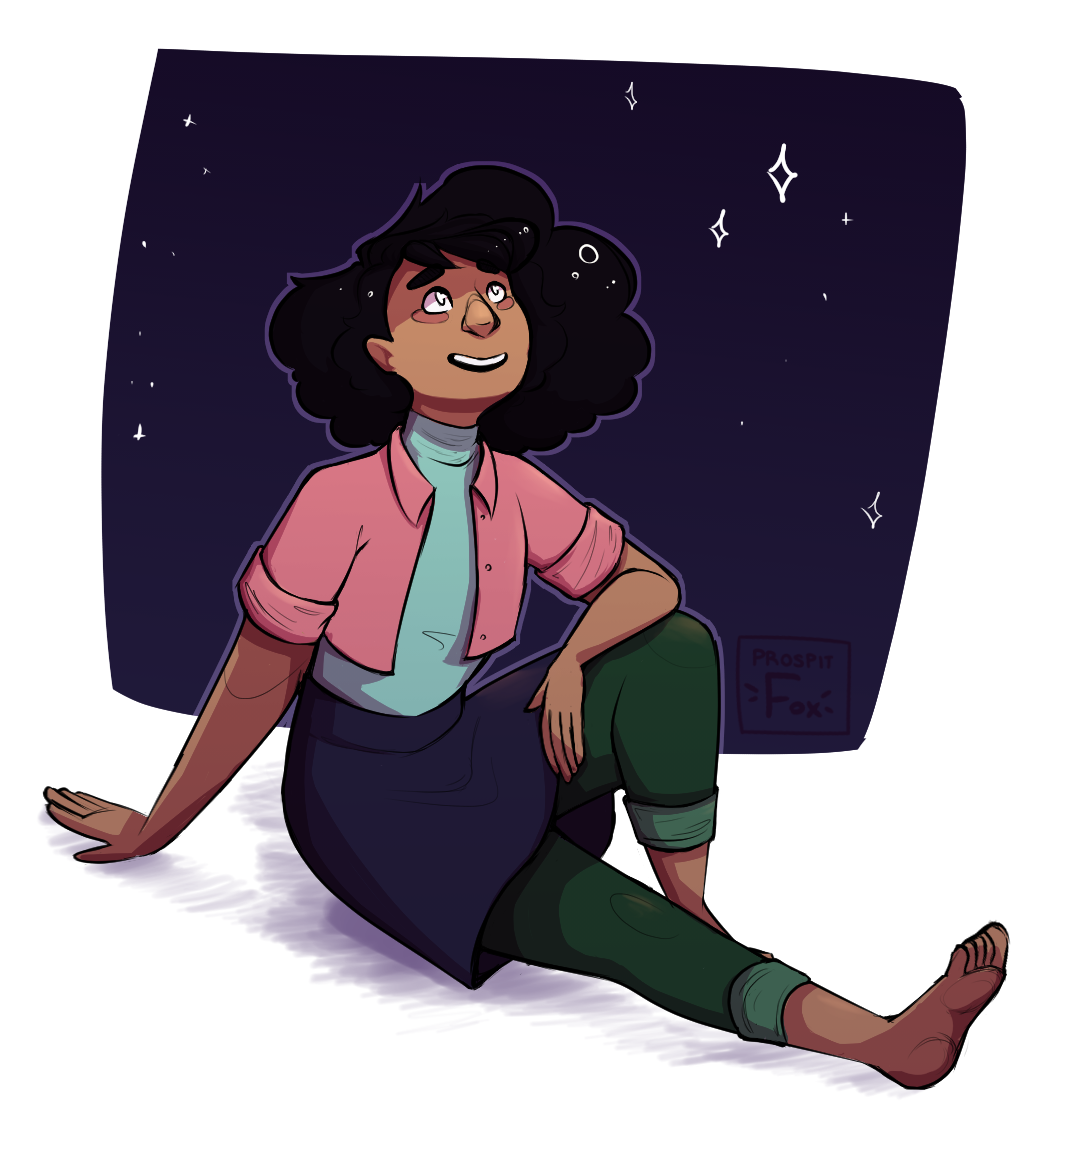 after the party, steven and connie go out and look at stars ~